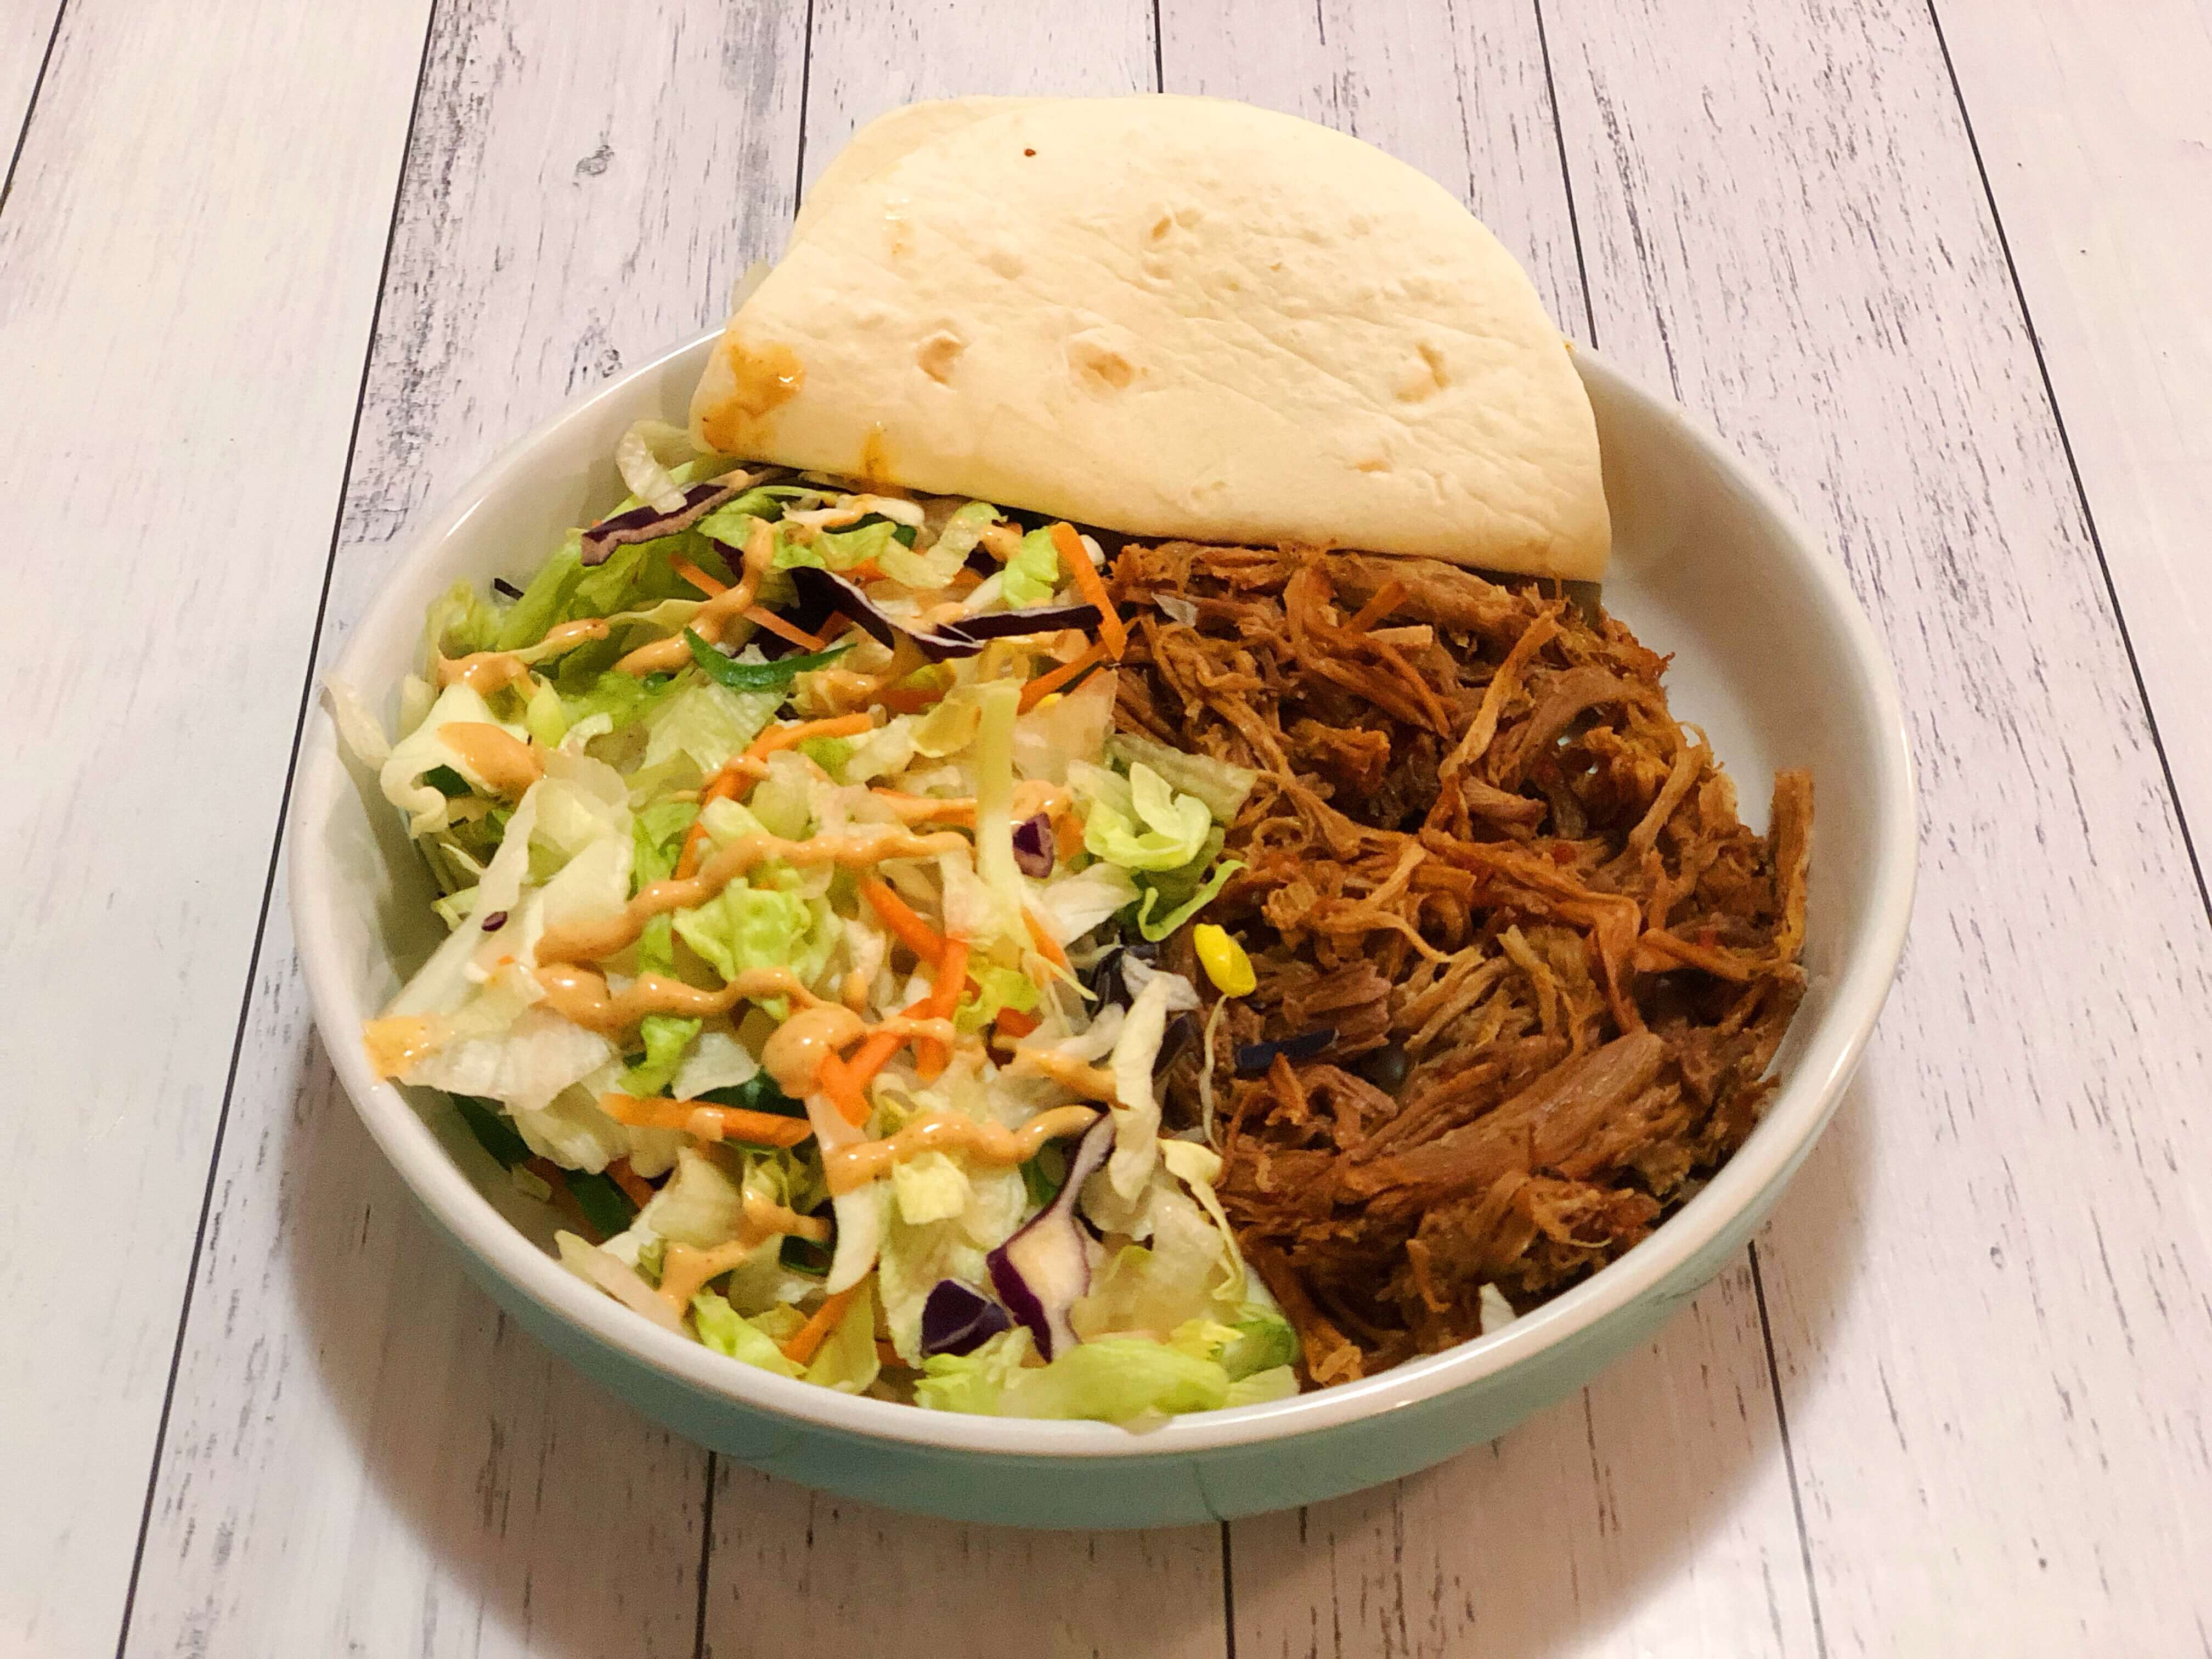 Review Crock Pot Express Crock Multi Cooker Plus A Pulled Pork Recipe Stuff Mums Like